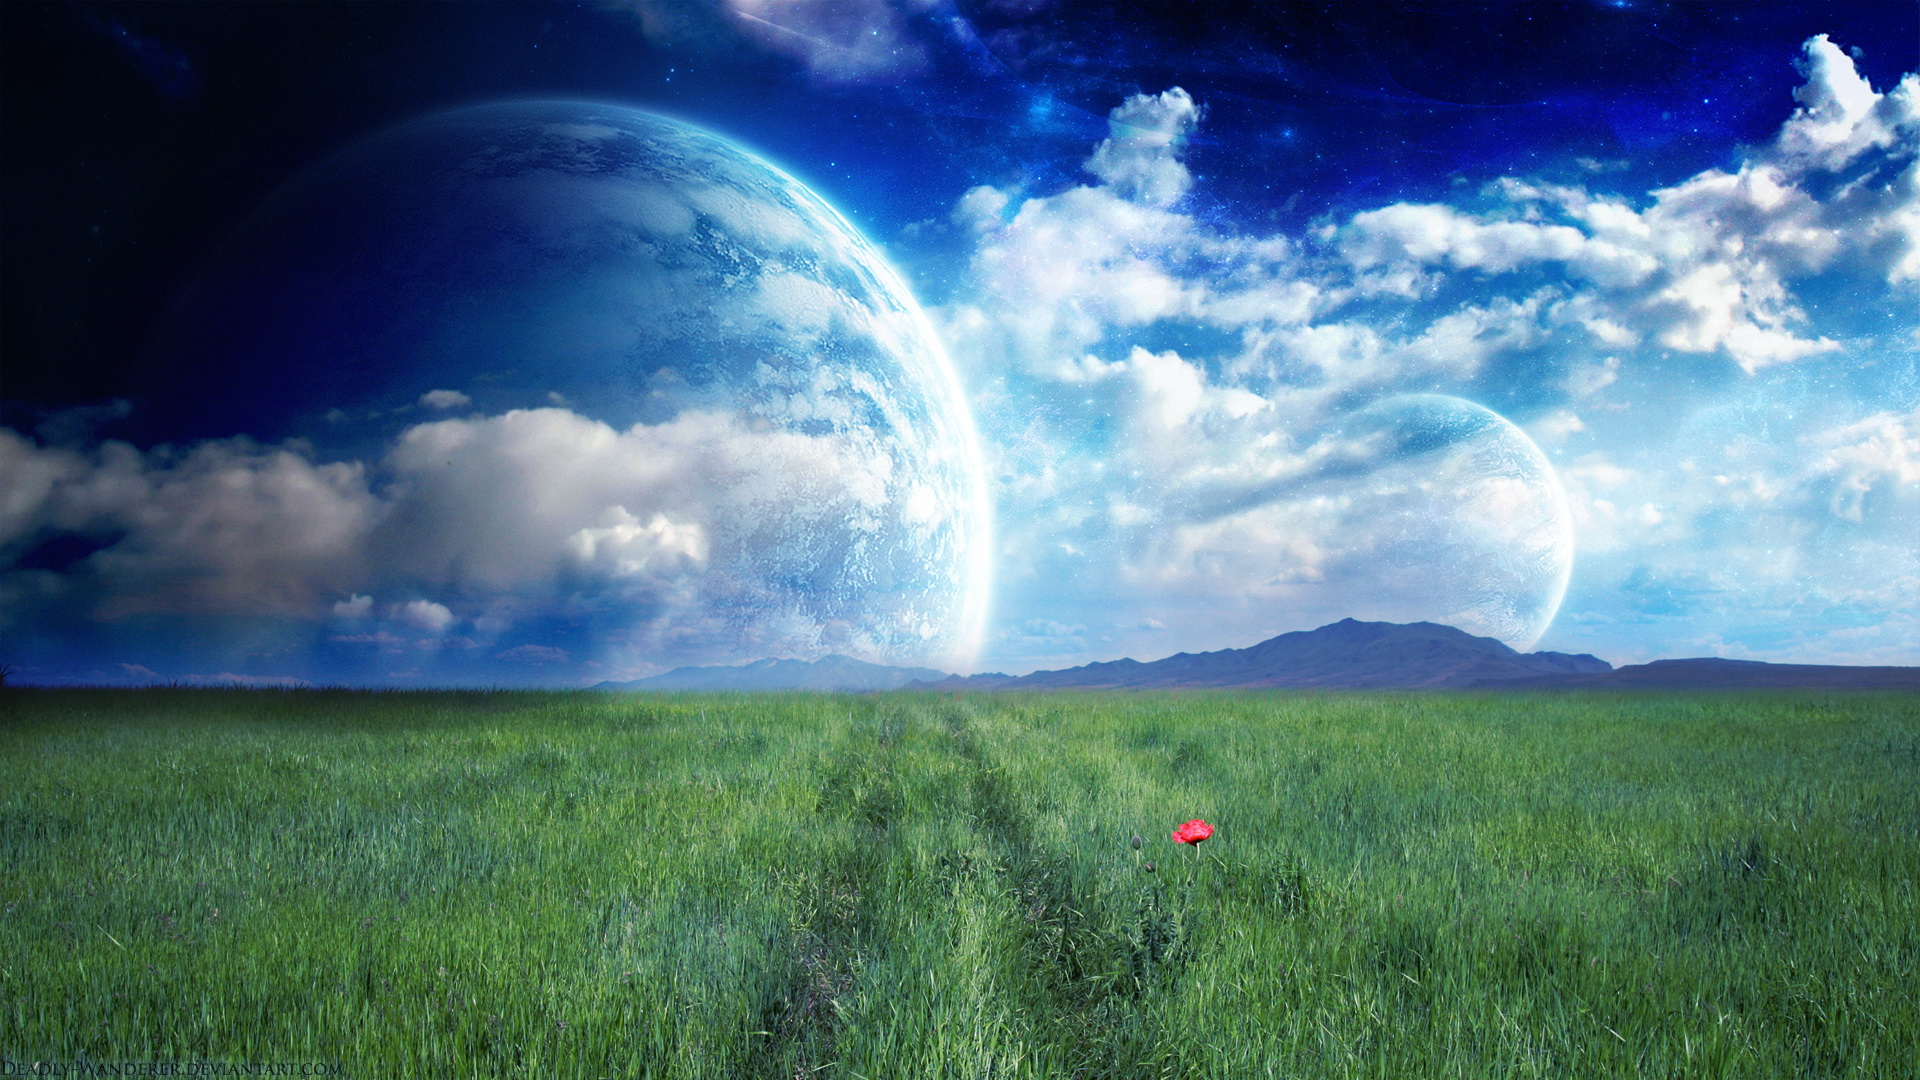 Earth - A Dreamy World  Wallpaper